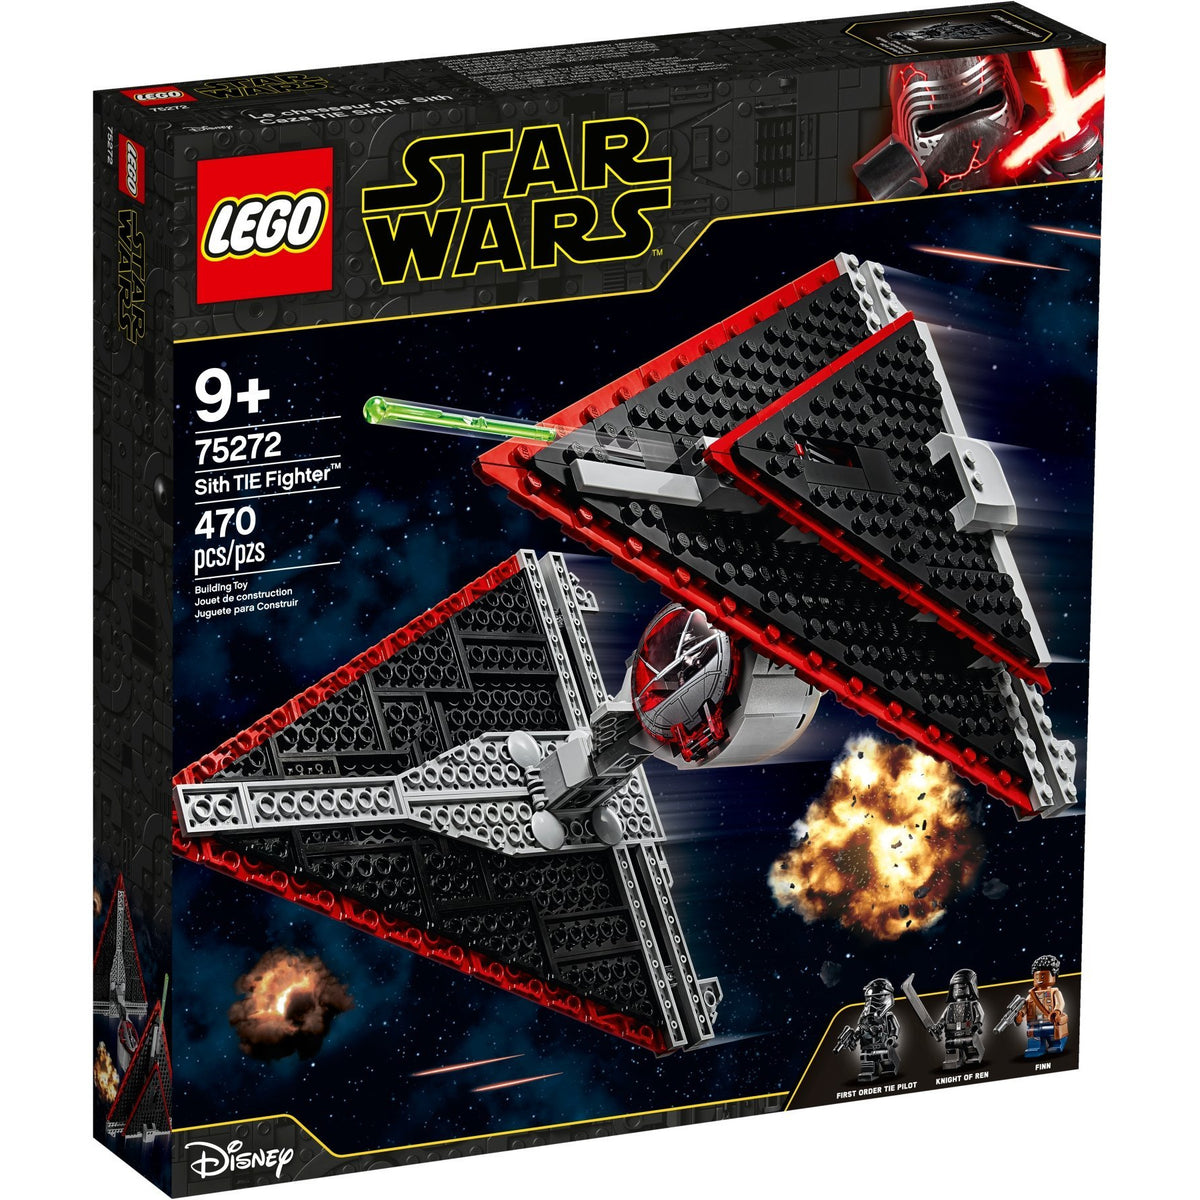 LEGO Star Wars Sith TIE Fighter 75272 canada ontario knight of ren finn pilot